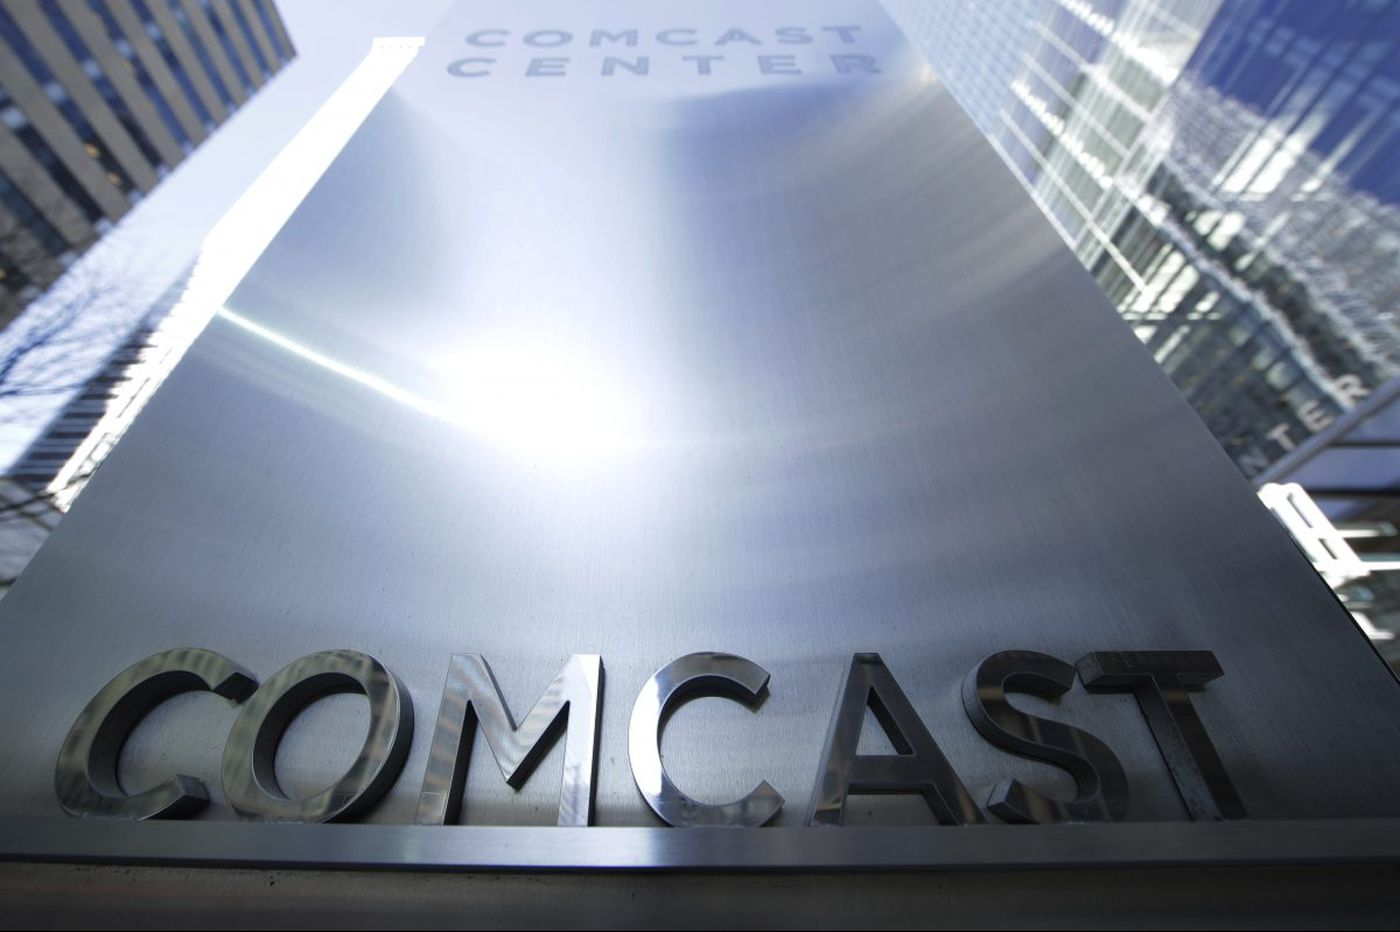 Cable bill is going up: Comcast, Dish, DirecTV to raise TV prices to counter cord-cutting